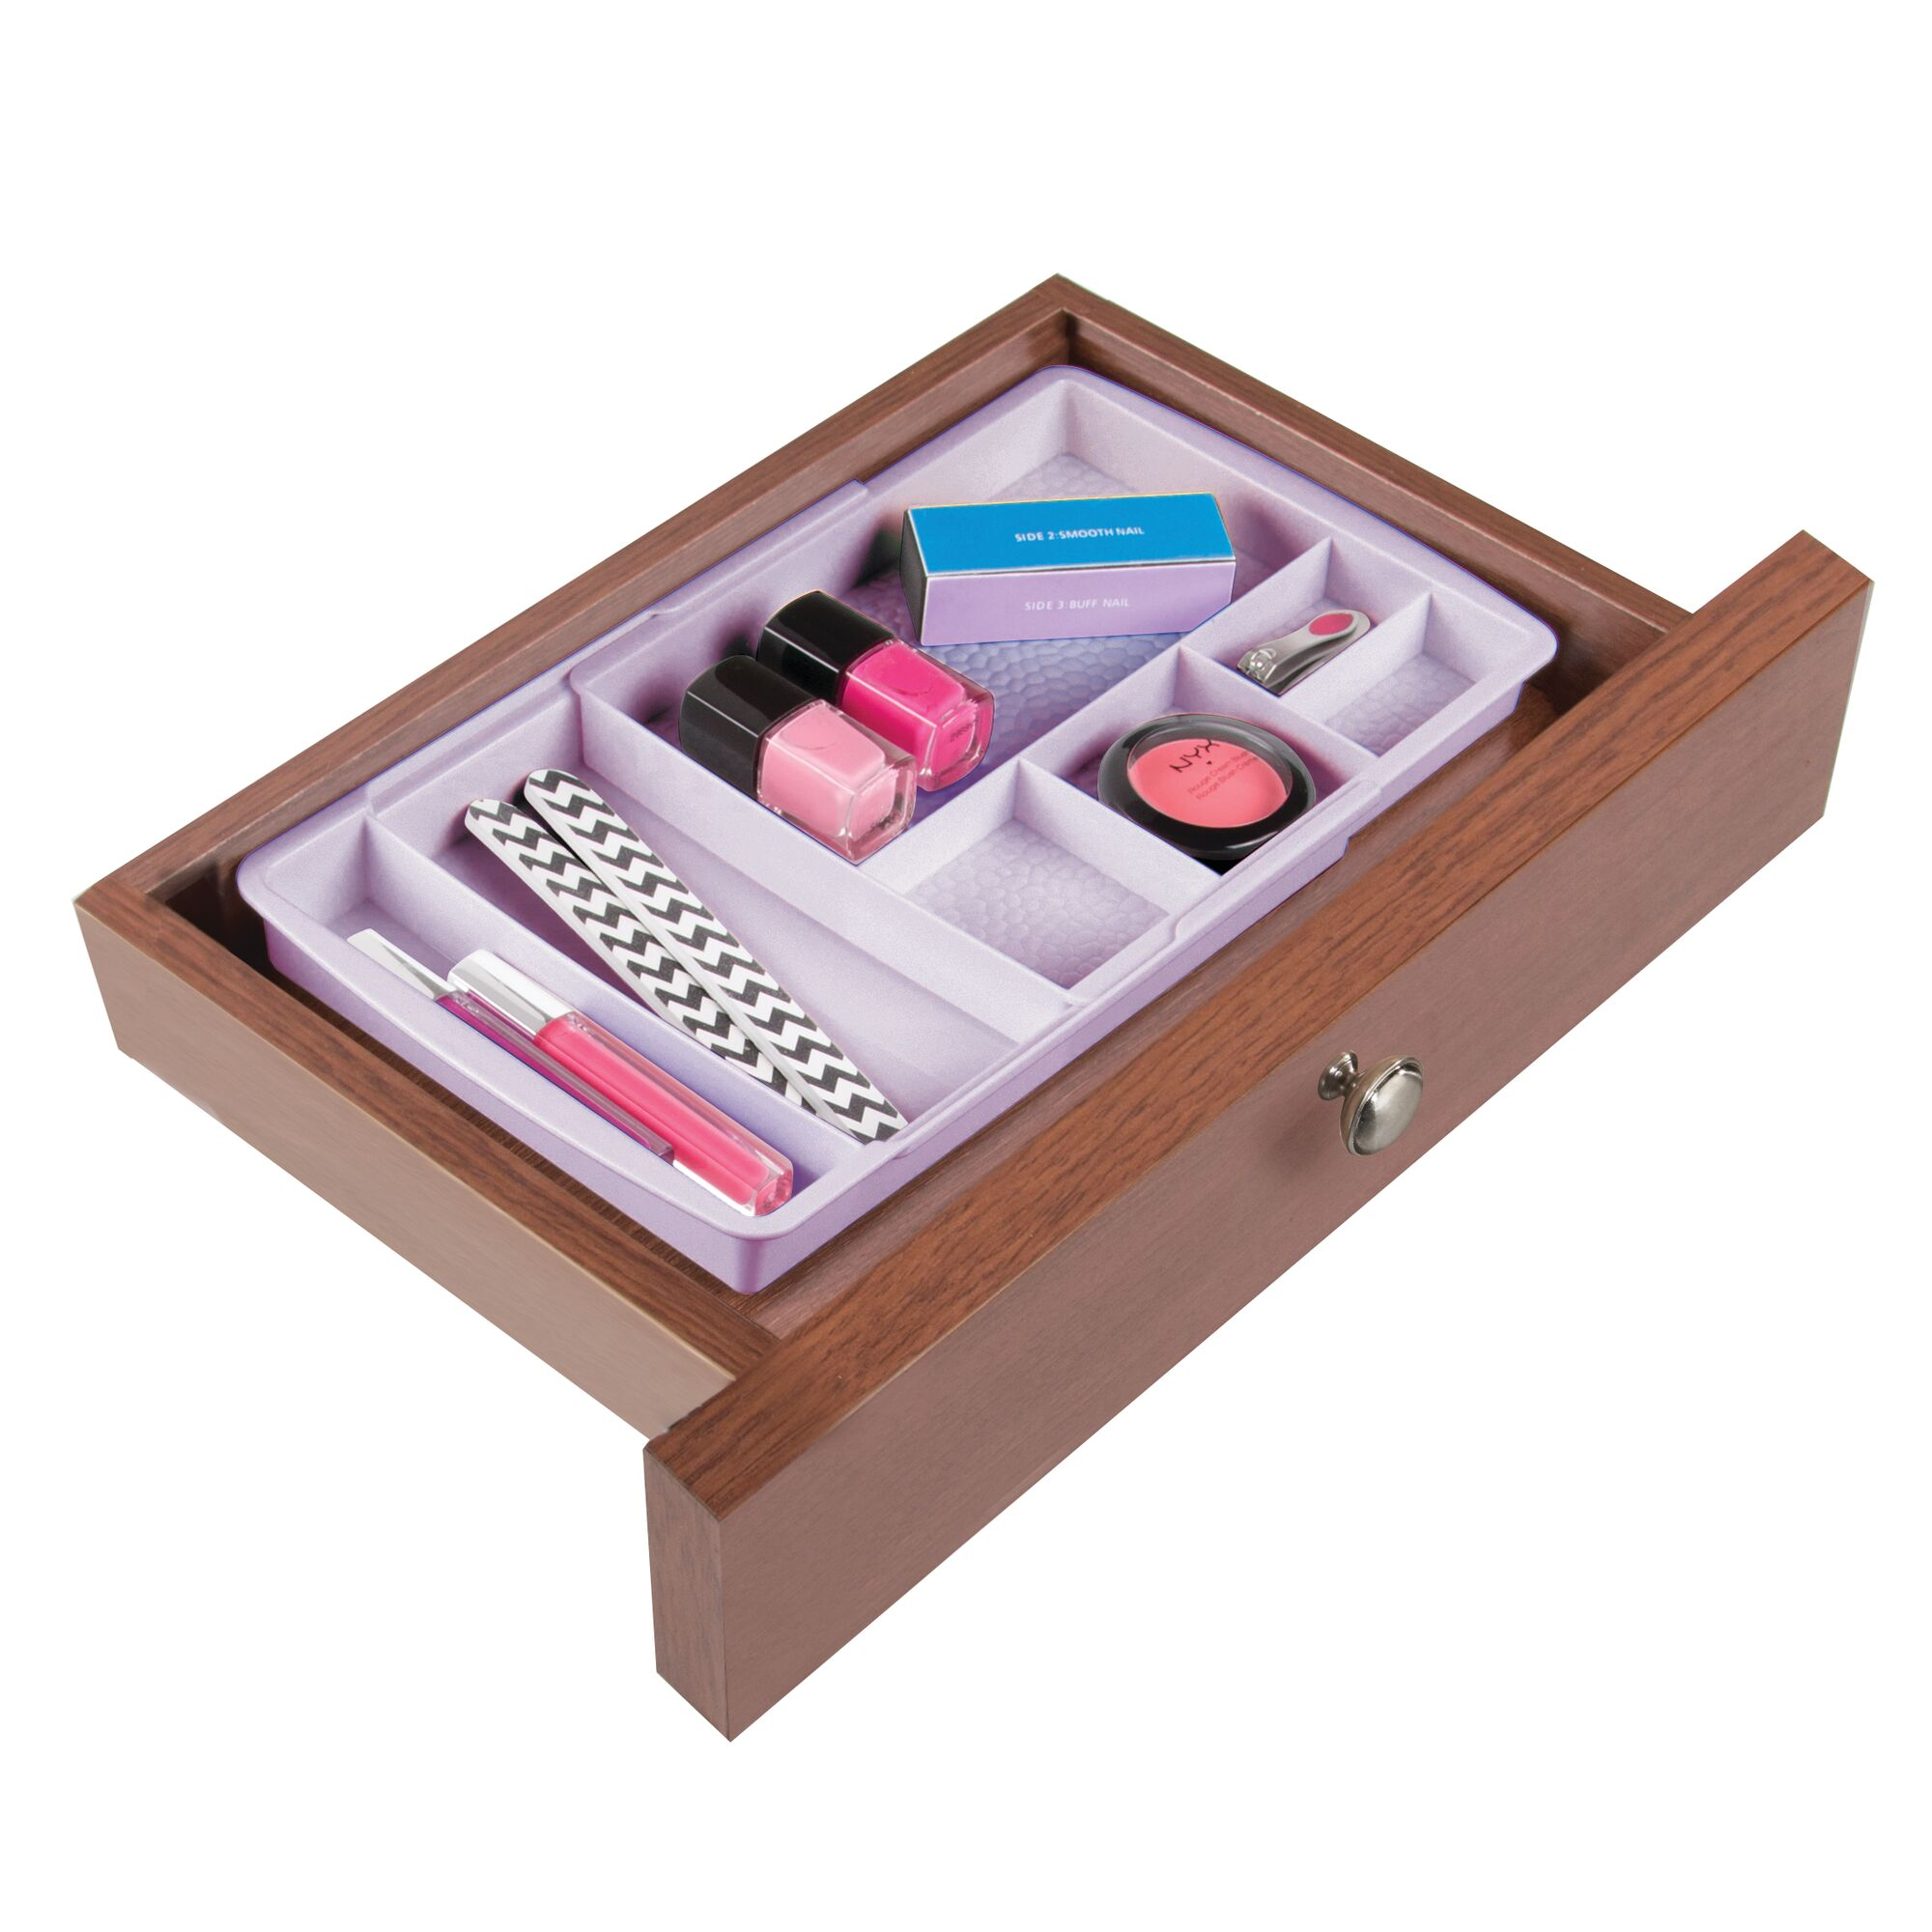 mDesign-Expandable-Makeup-Organizer-Tray-for-Bathroom-Drawers thumbnail 64